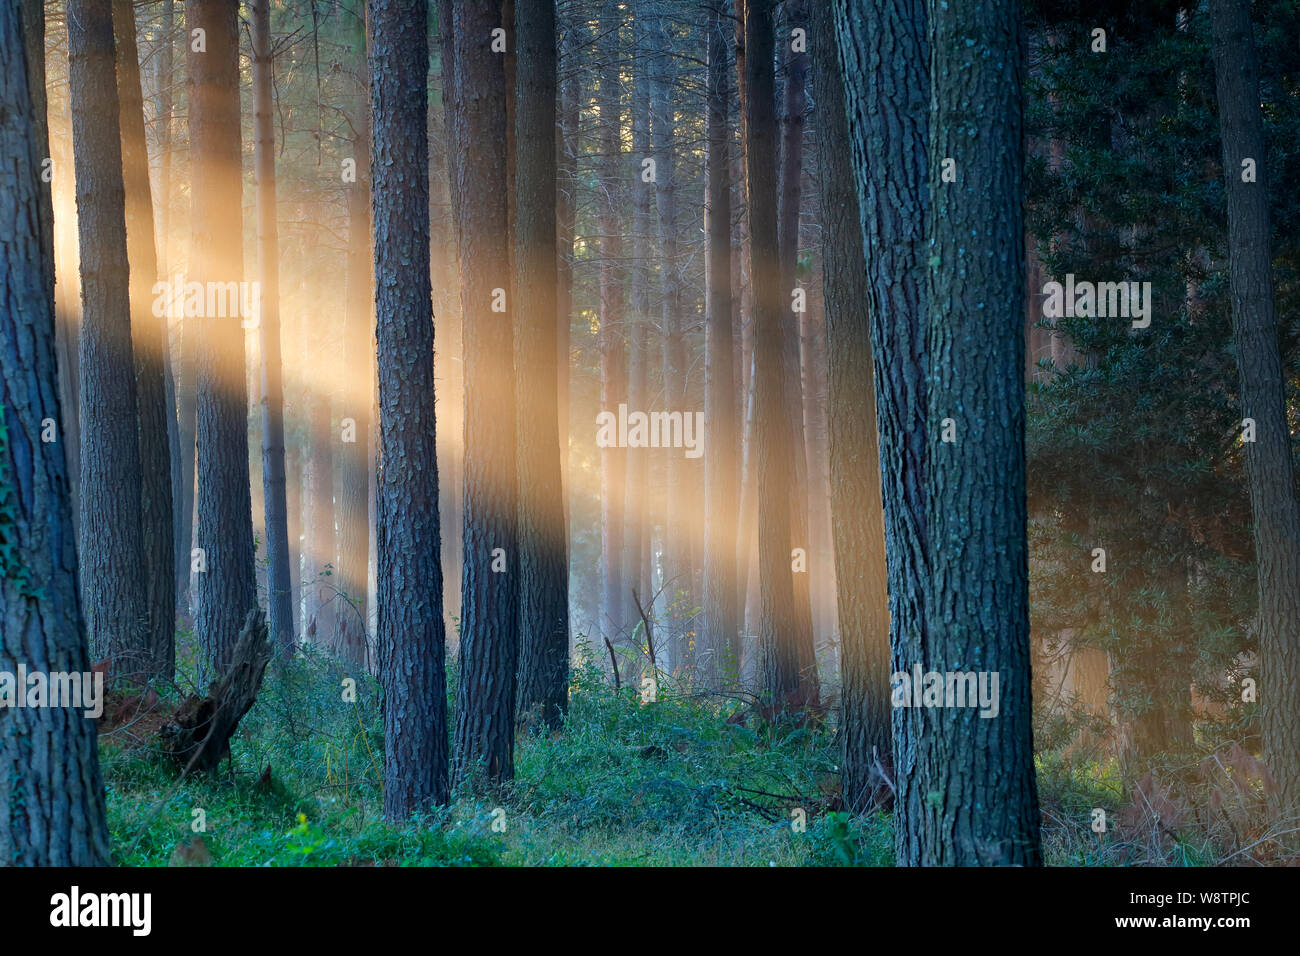 Rays of sunlight late afternoon in a pine forest Stock Photo